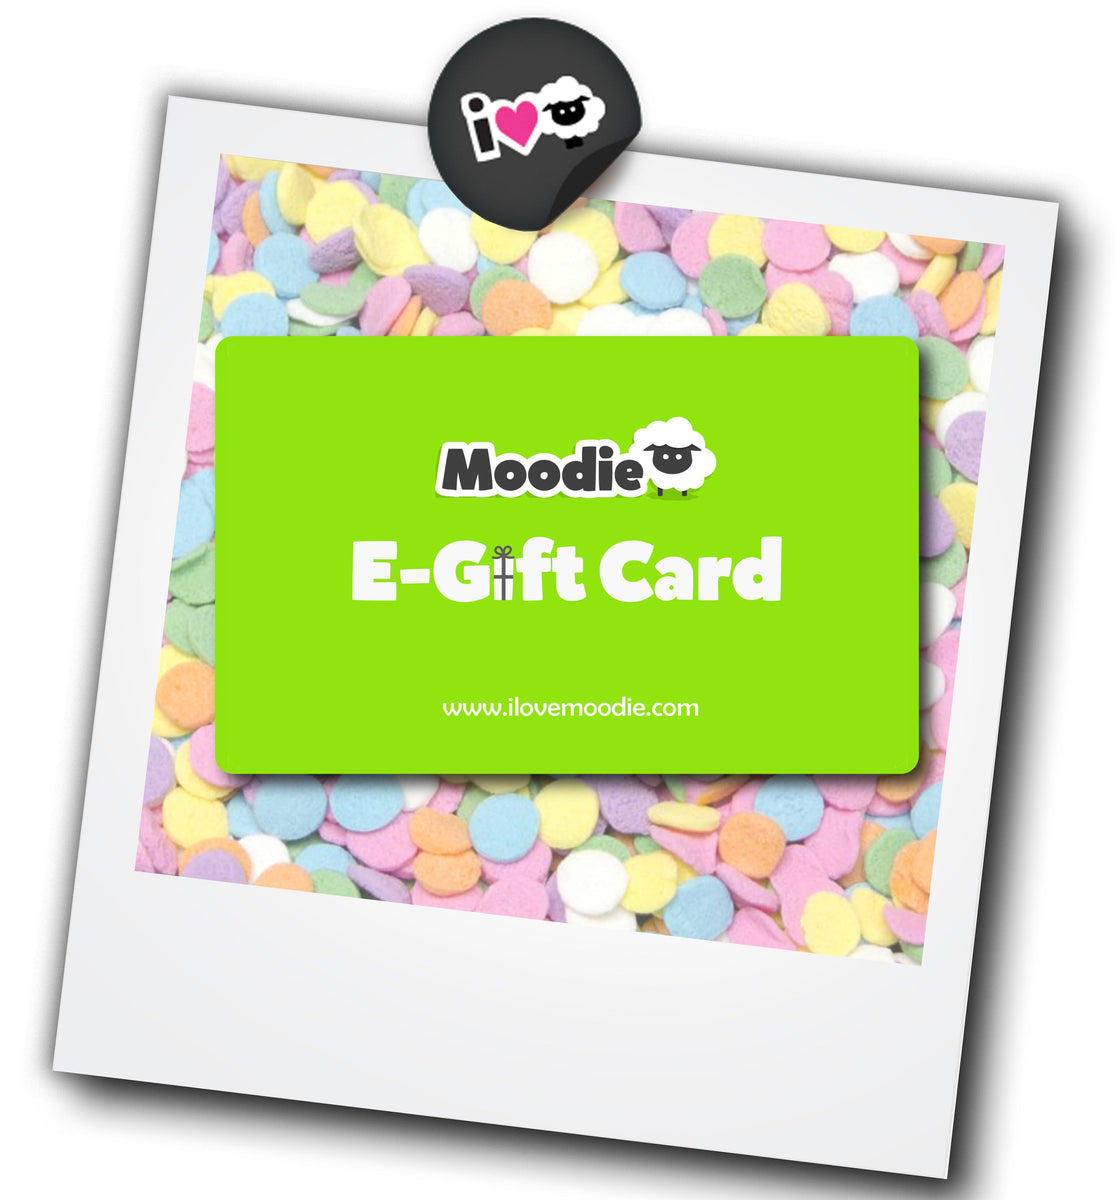 moodie gift cards